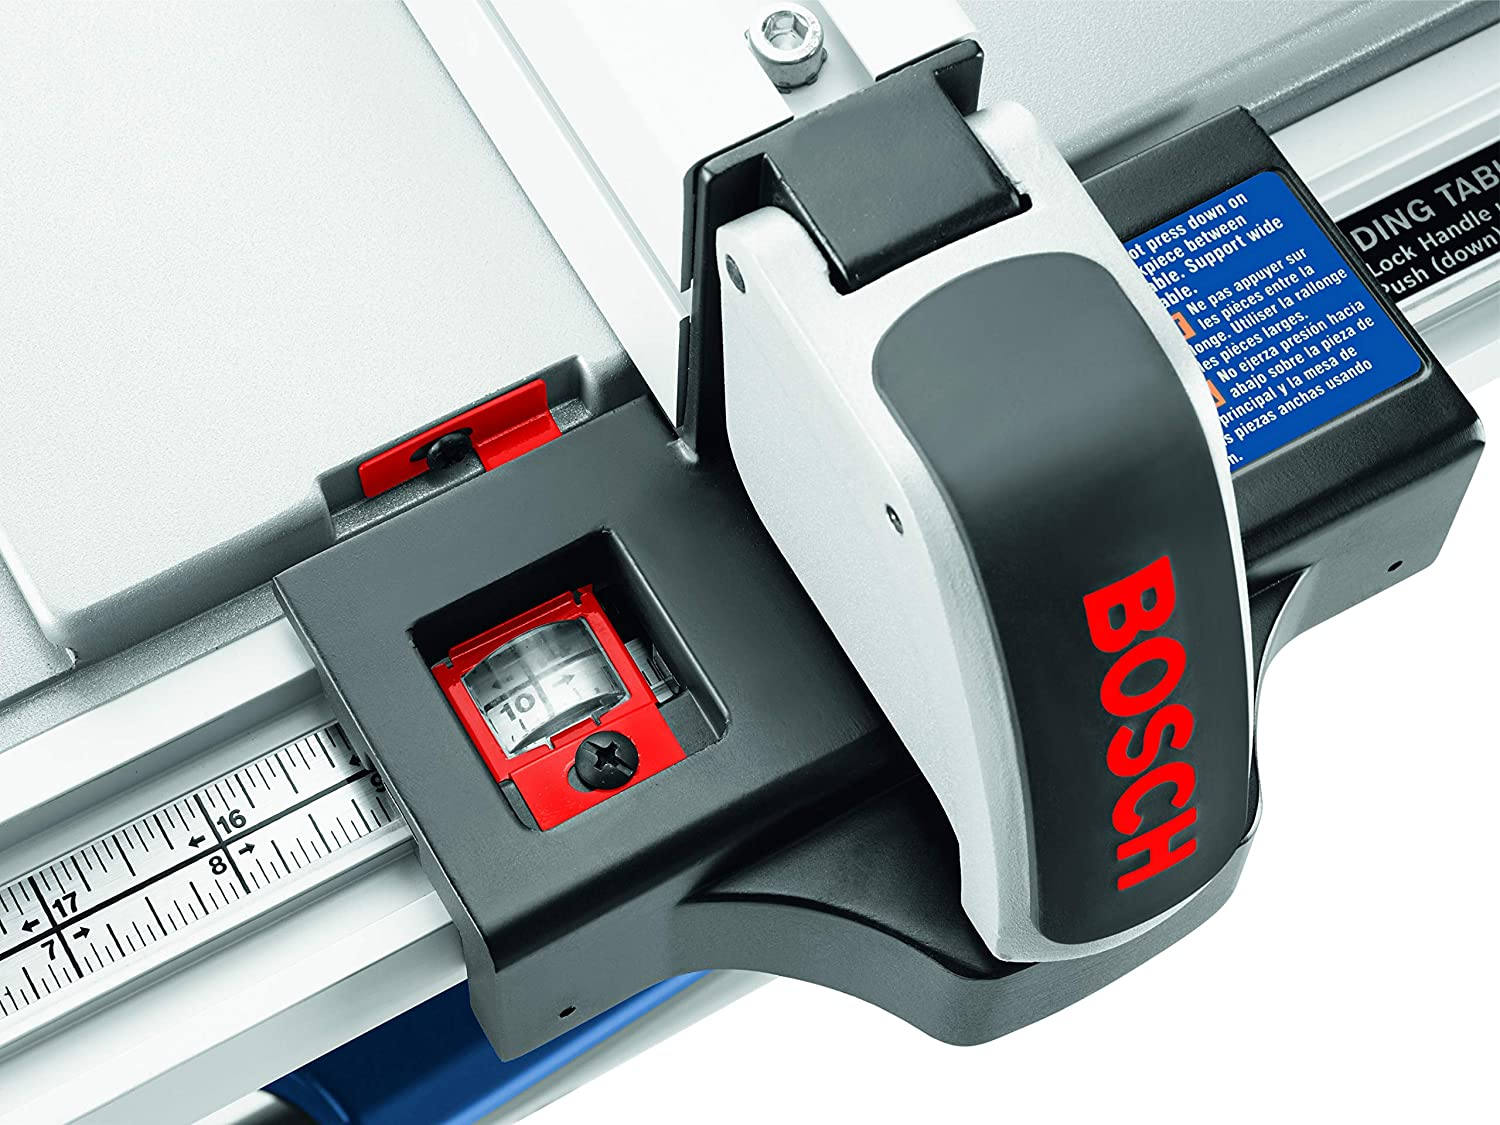 Bosch 4100-10 featured image 10